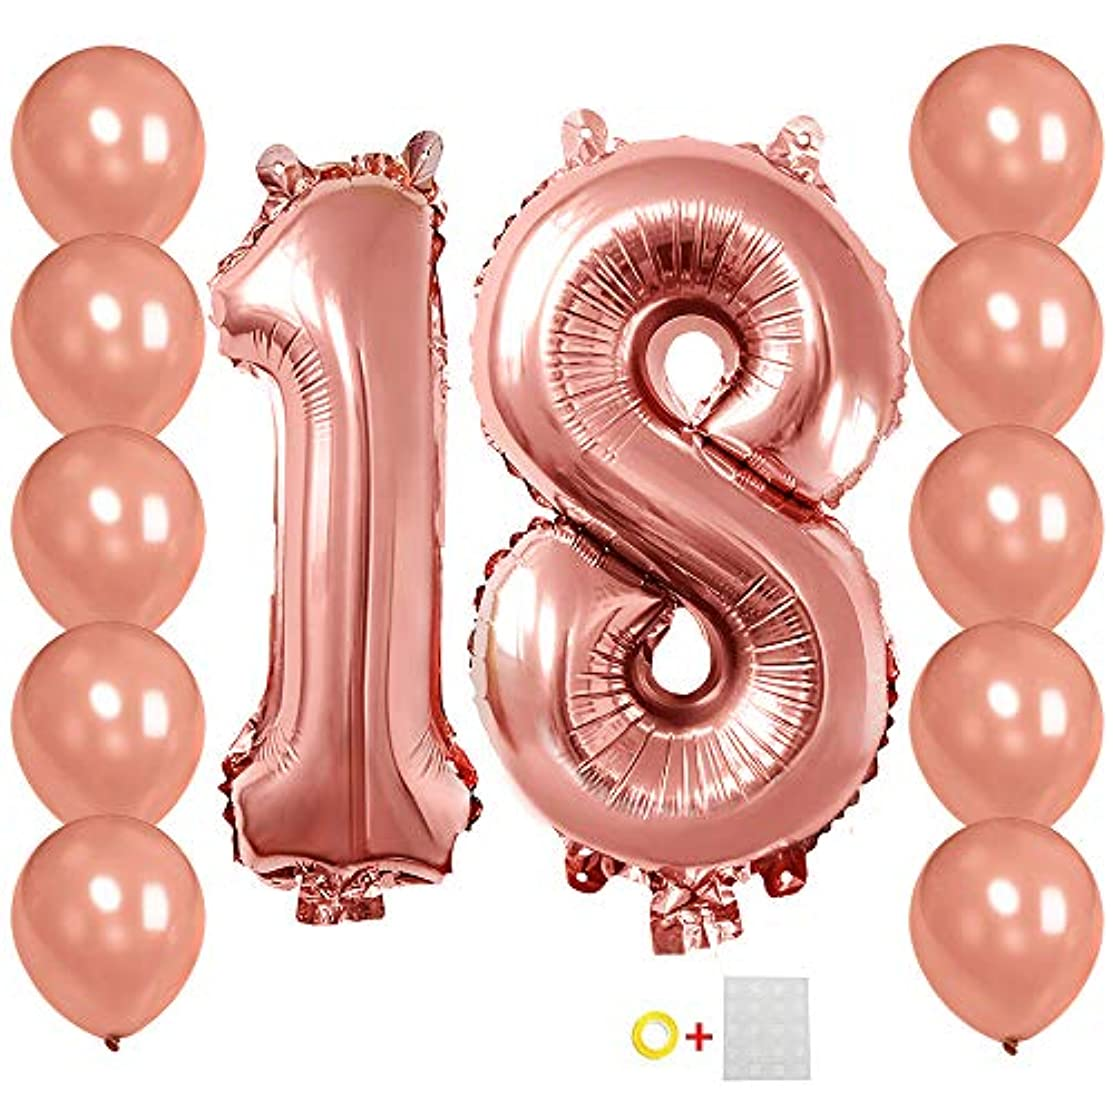 Number 18 Balloons 40 inches Rose Gold 18th Birthday Helium Foil Mylar Balloon+10Pcs Latex Balloons Birthday Decorations & Supplies